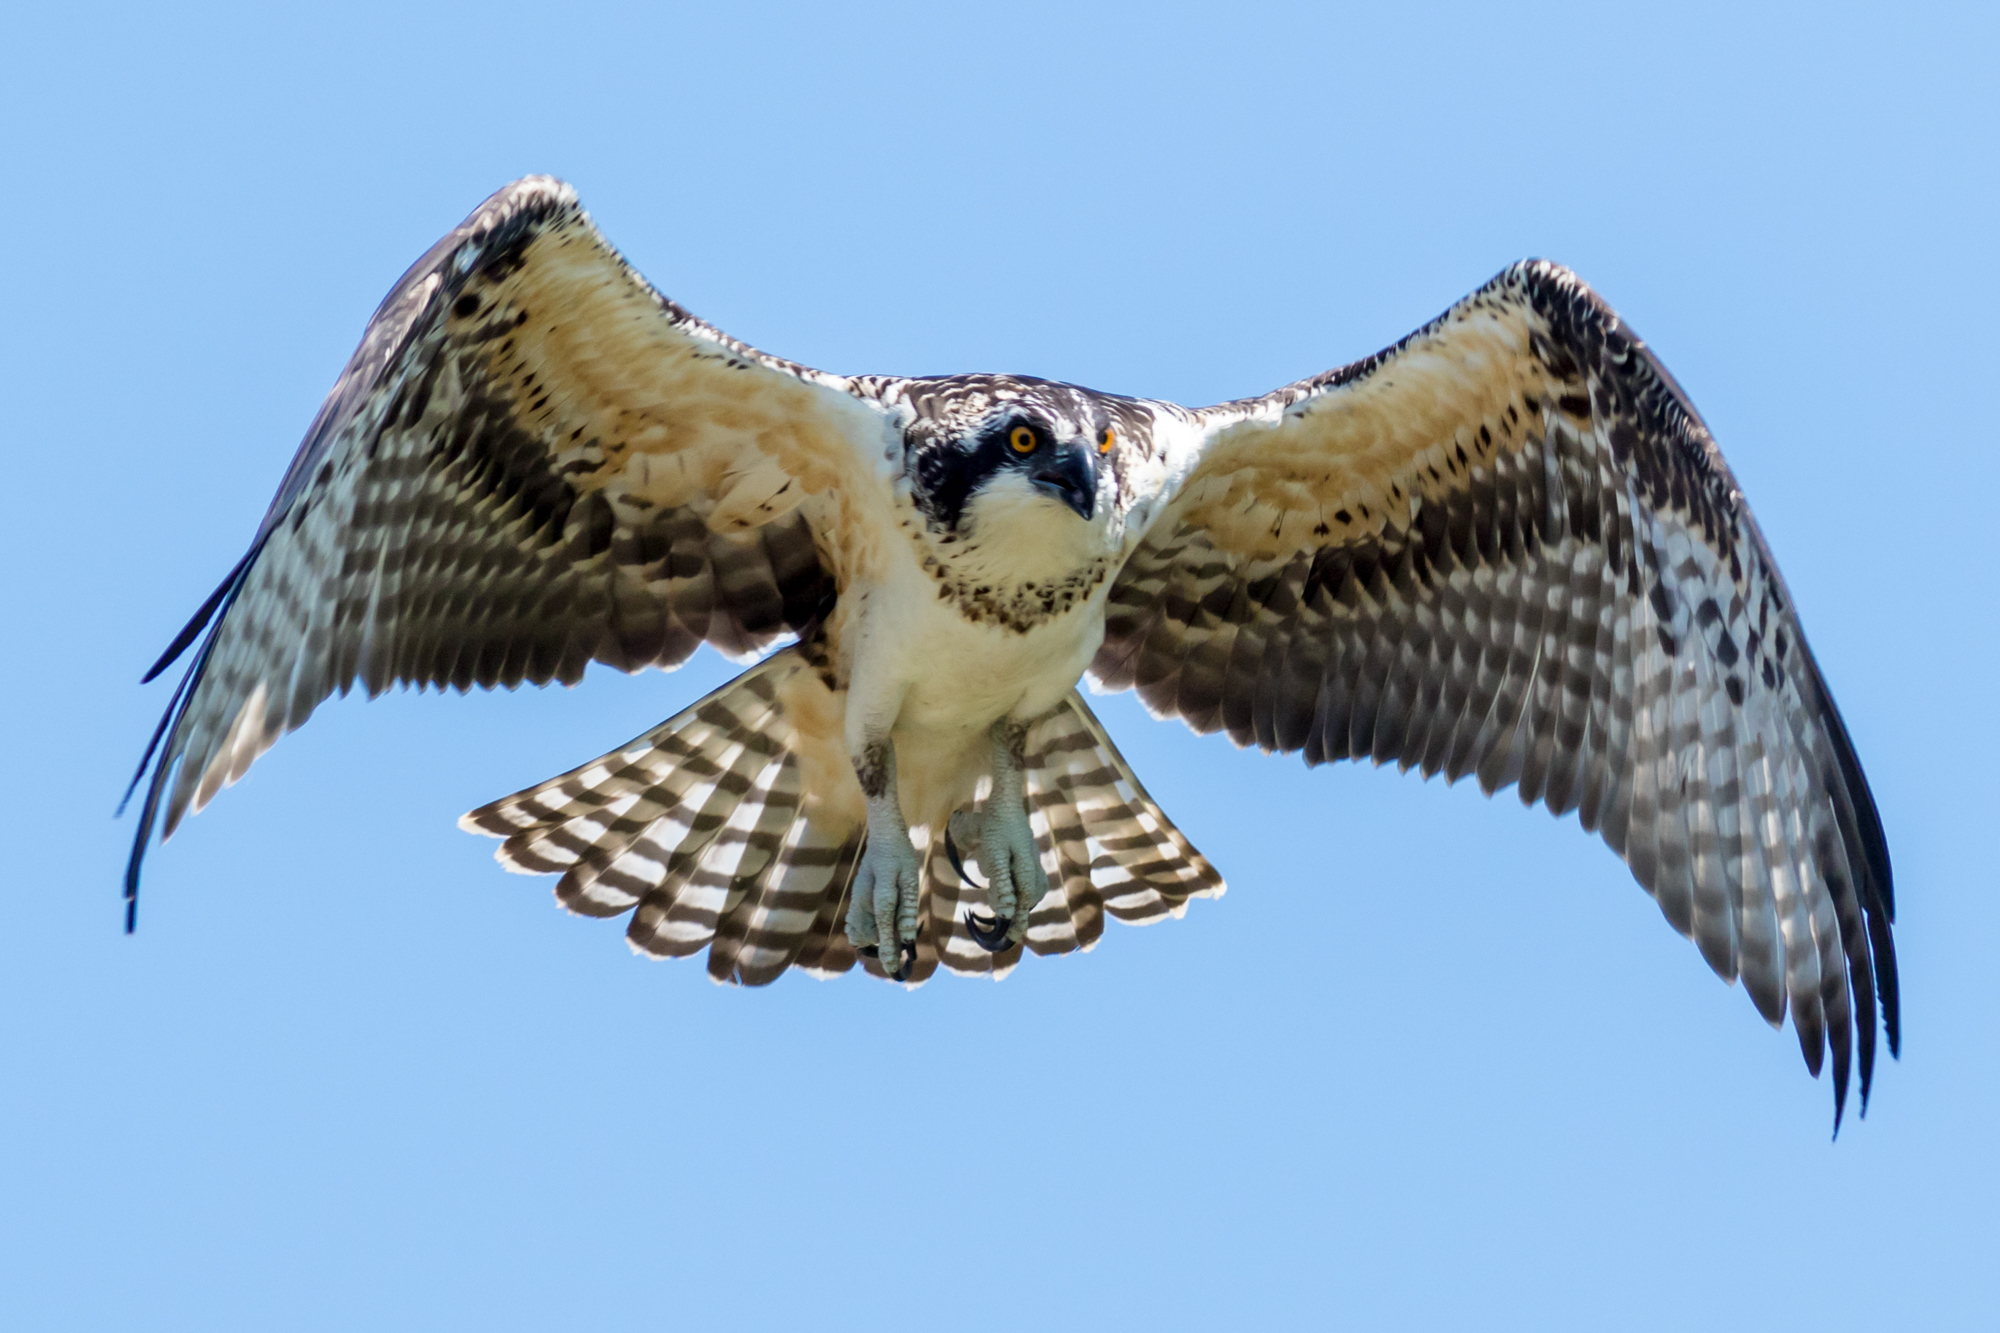 Young Osprey in Flight Over the River